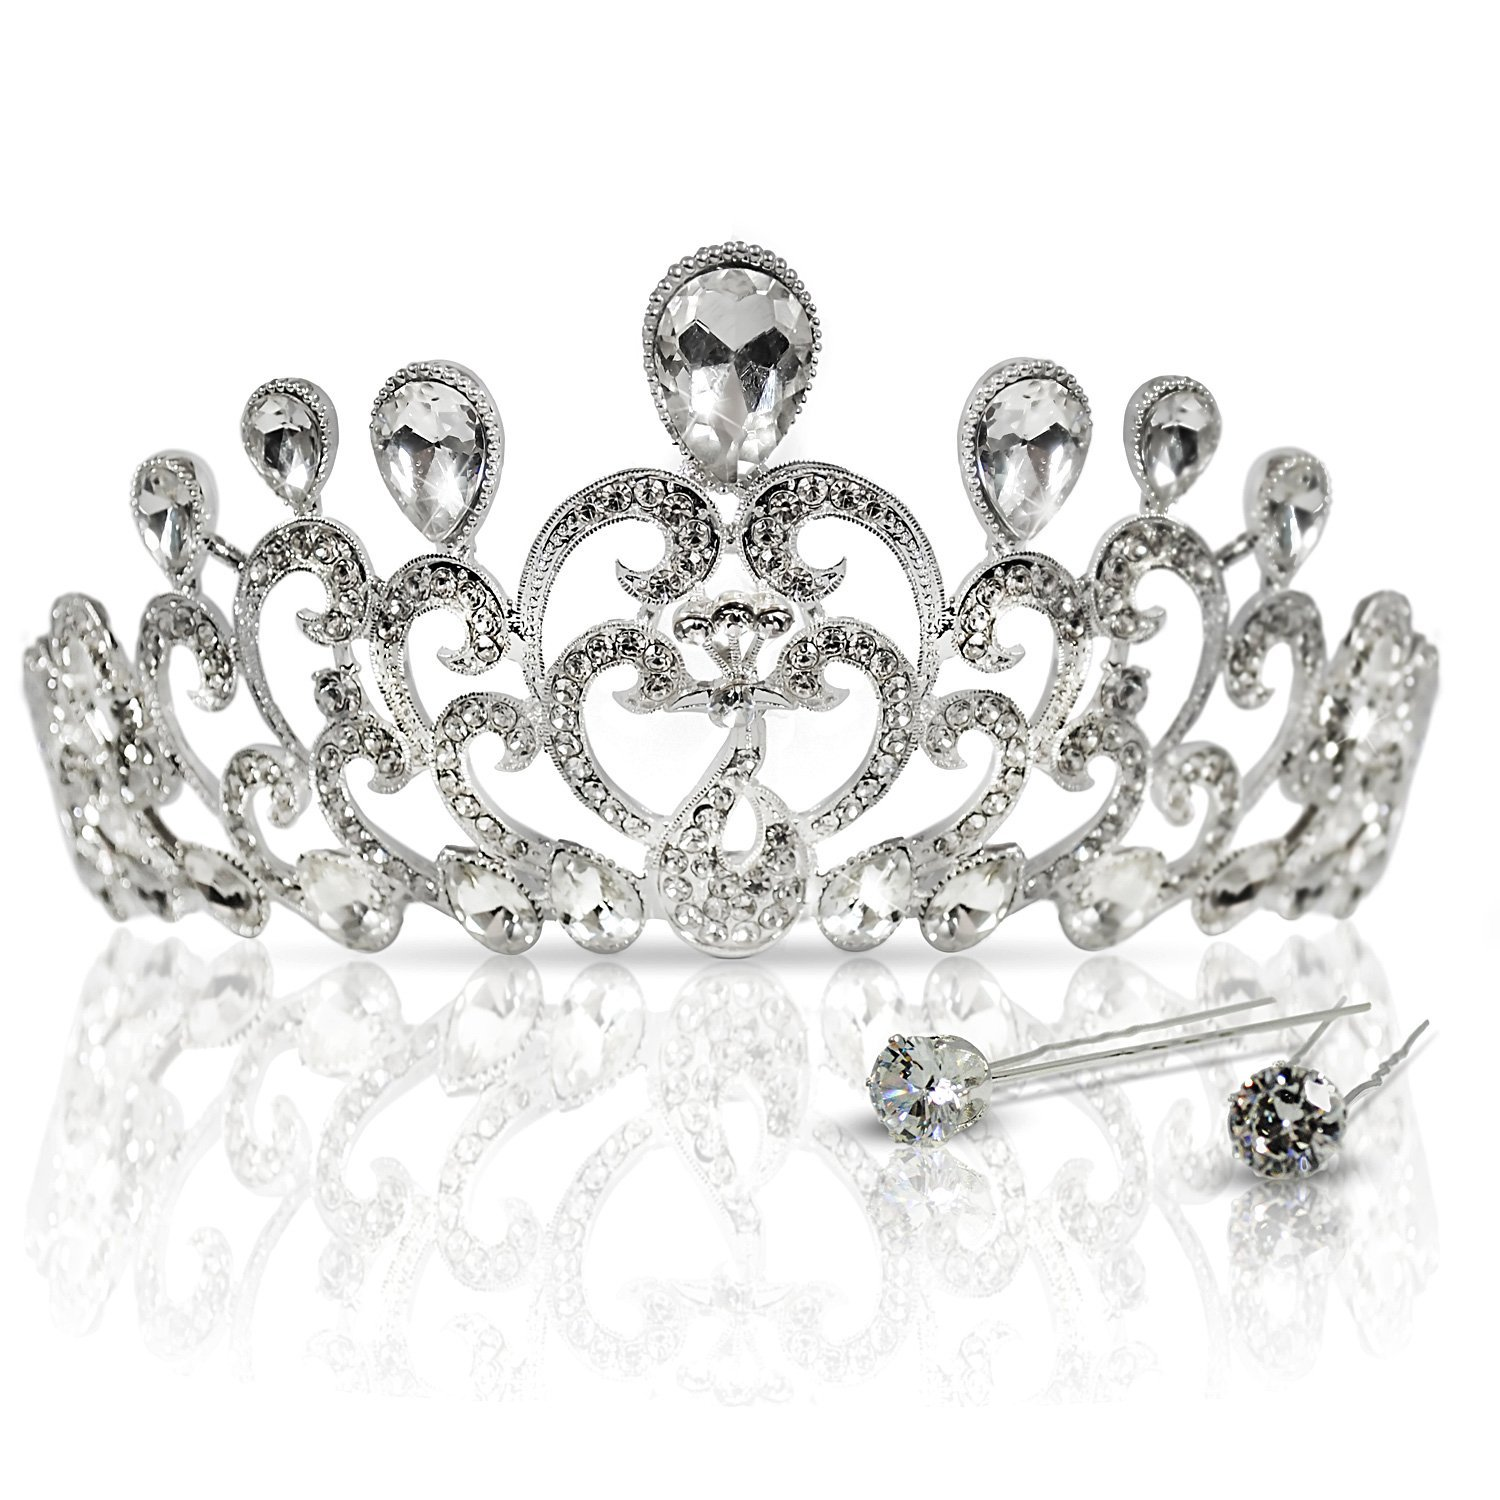 Beneleaf Expands, Offers Sparkle Studded Tiaras for All Occasions